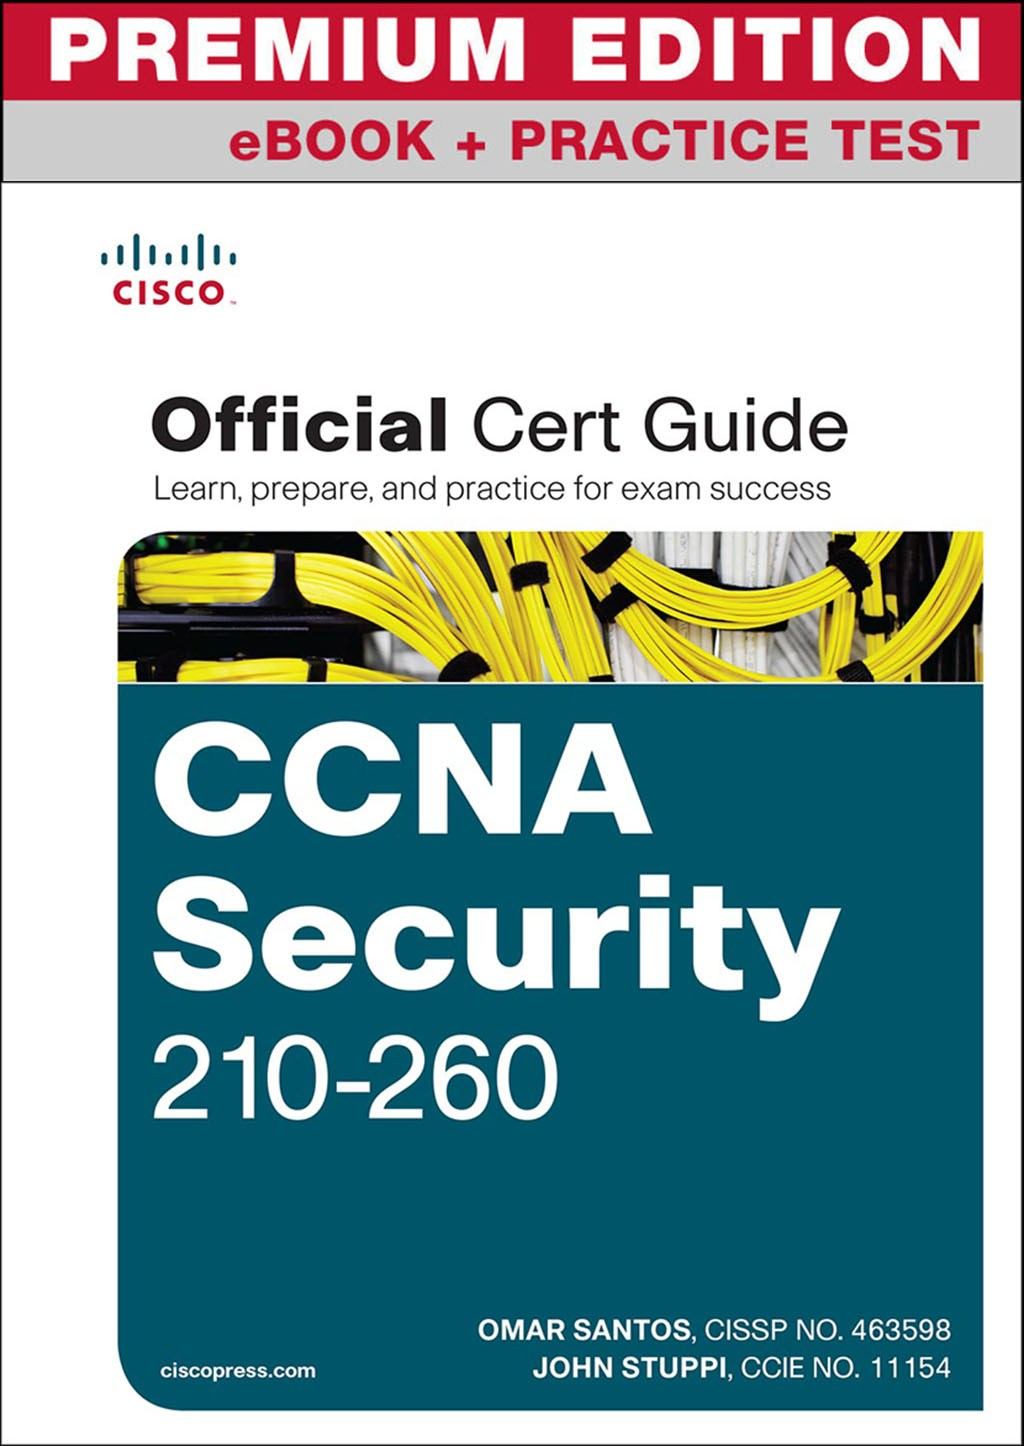 CCNA Security 210-260 Official Cert Guide Premium Edition and Practice Test